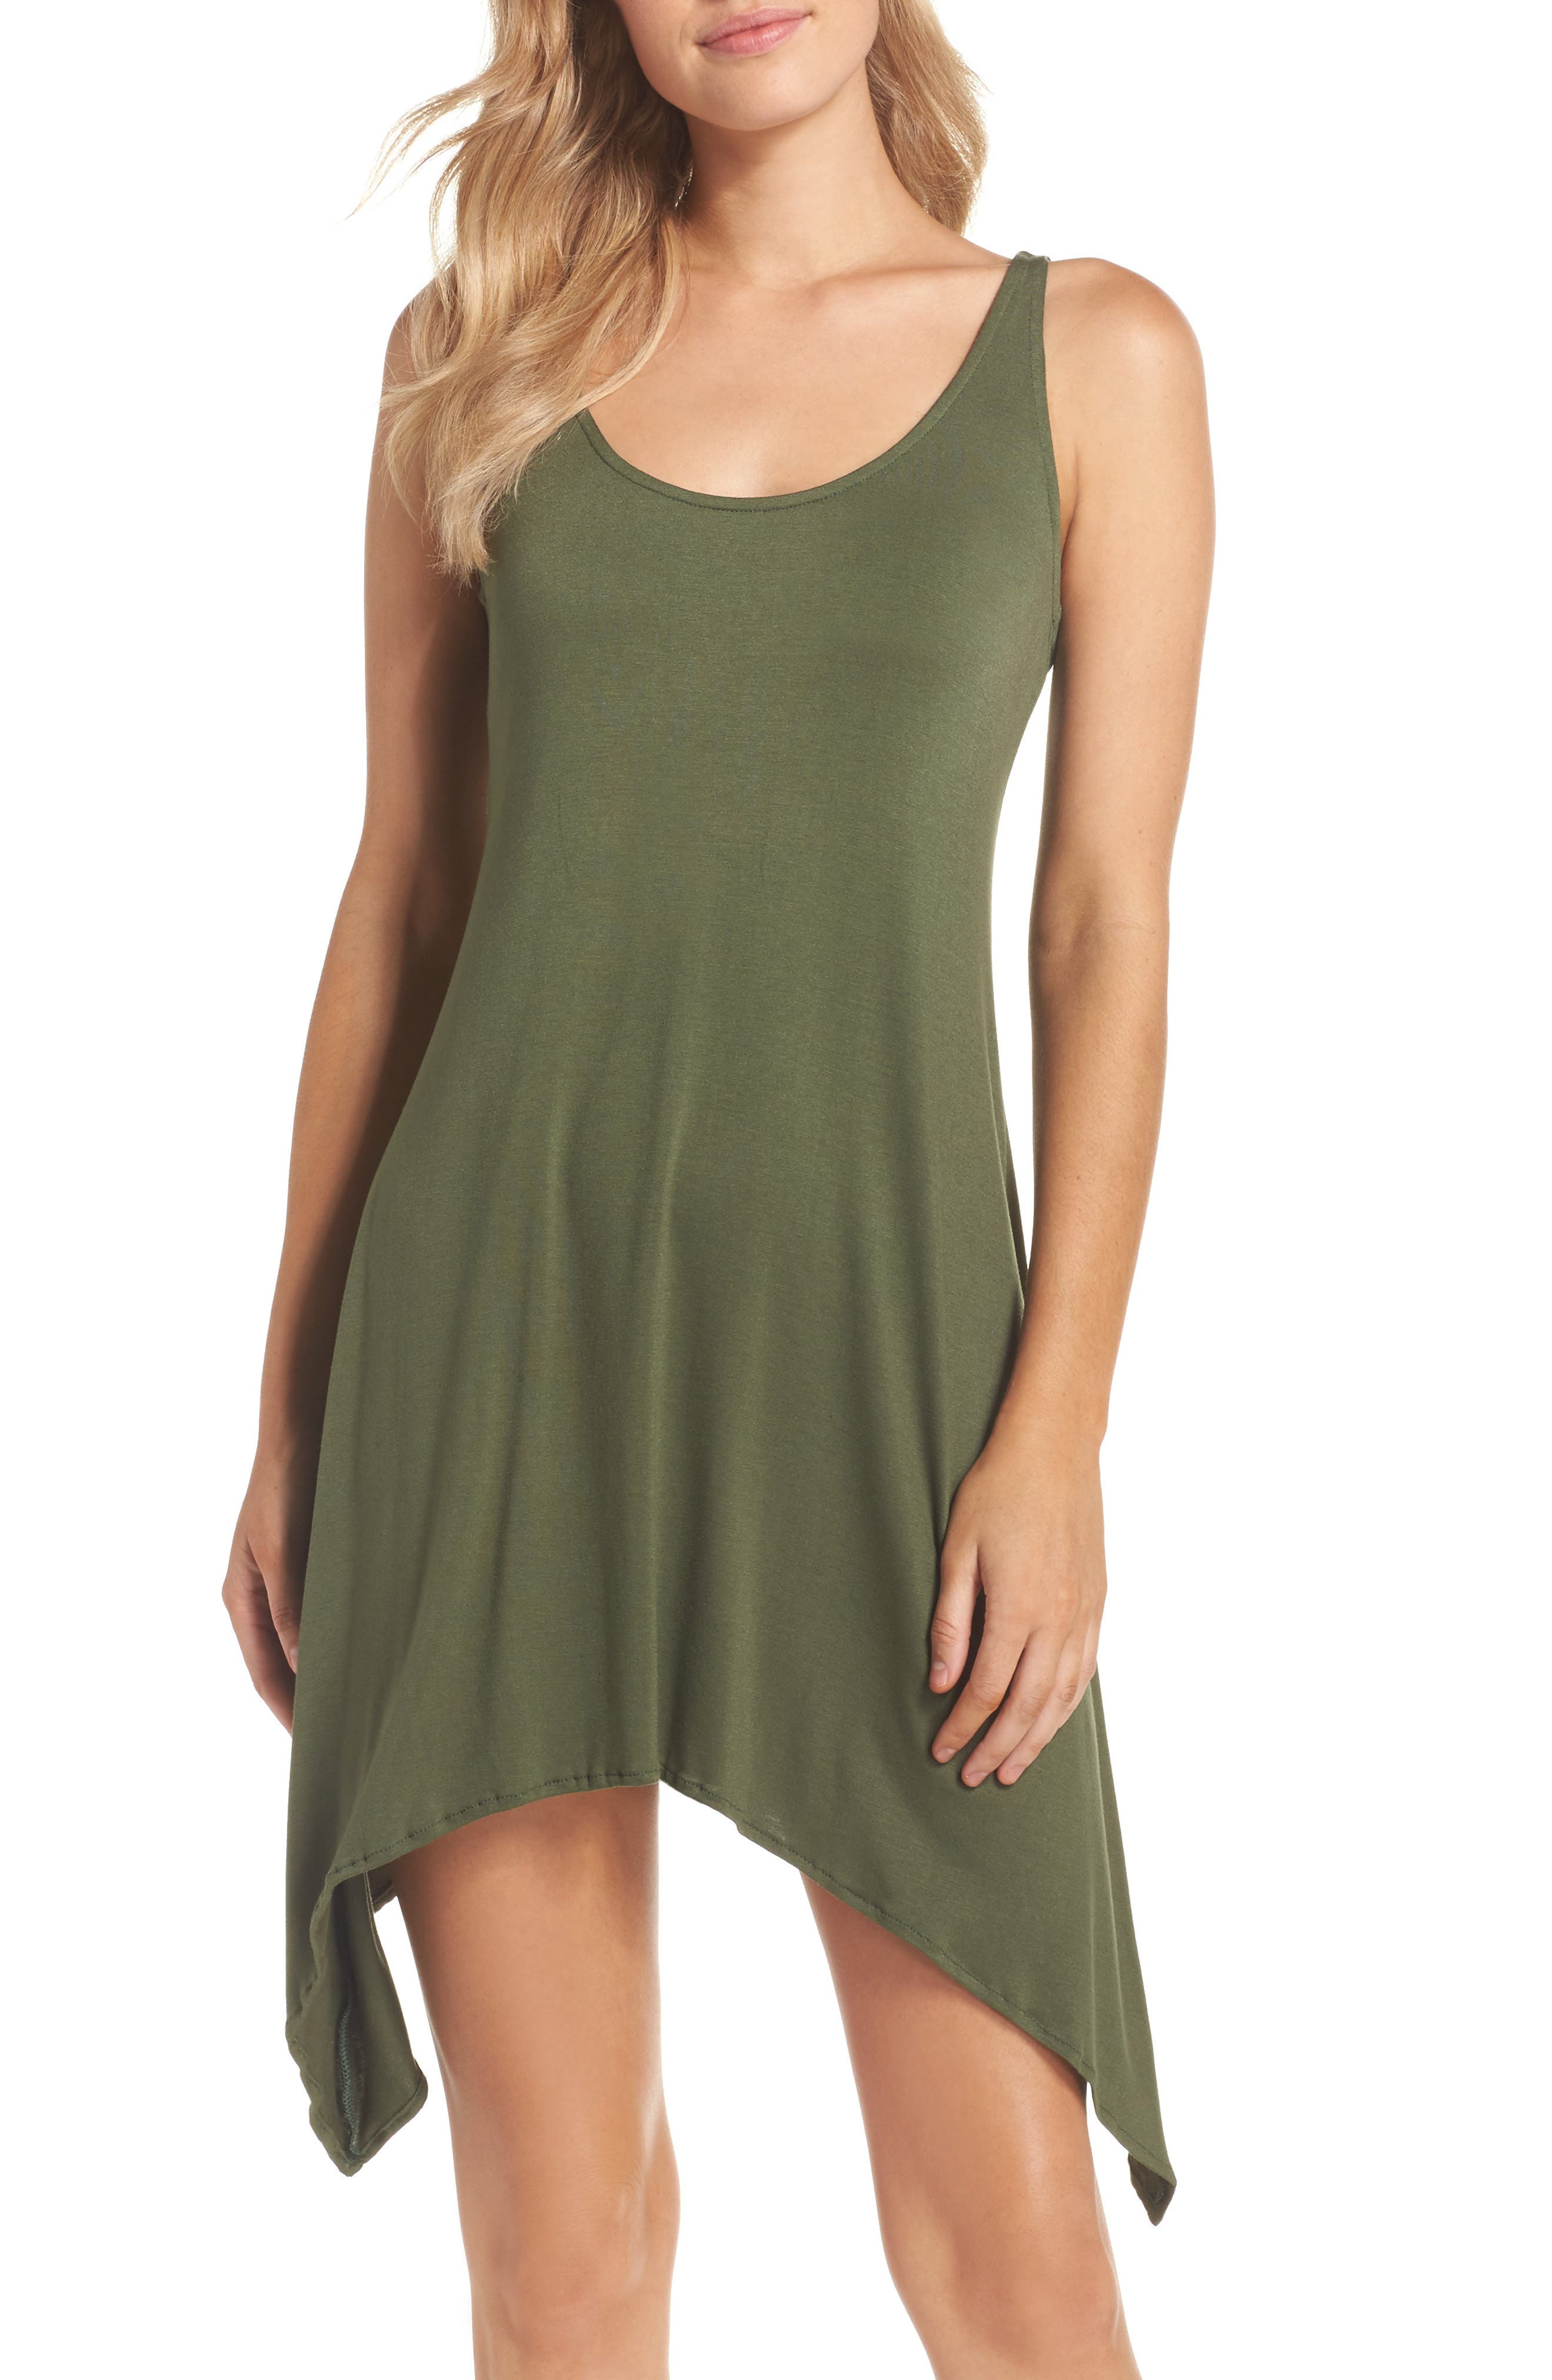 Take Cover Cover-Up Dress,                         Main,                         color, 302